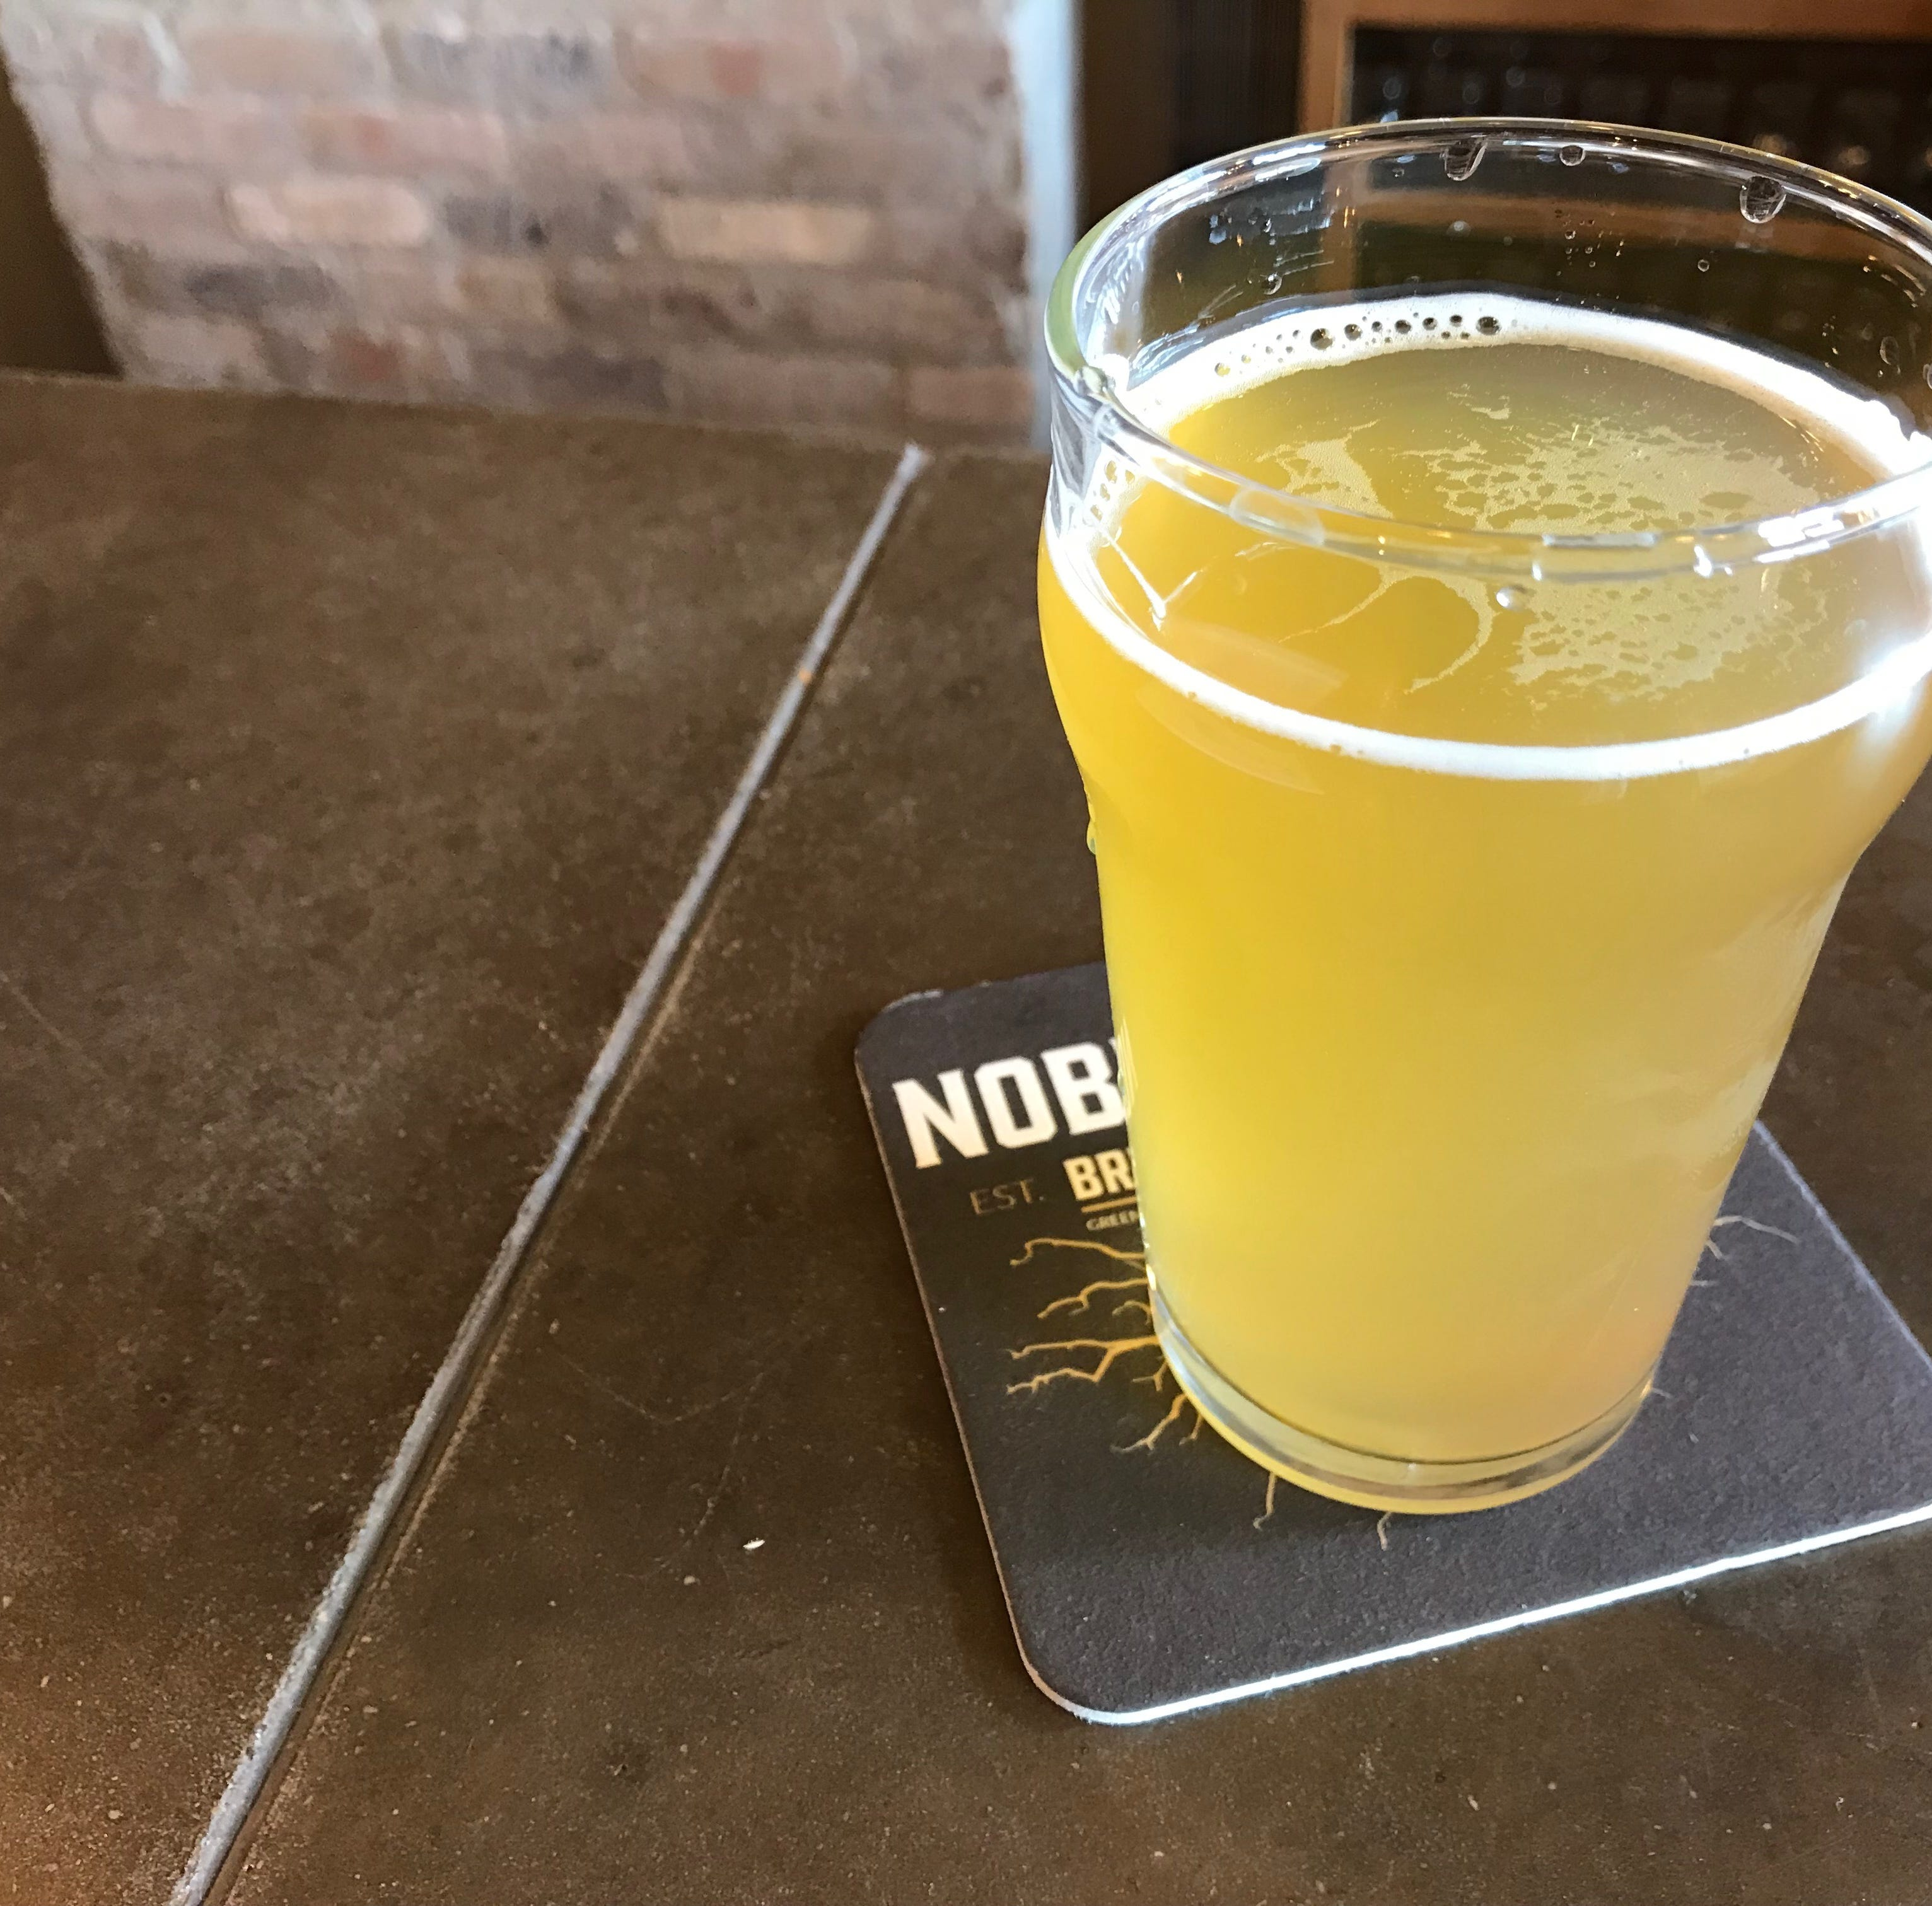 Want to try a brut IPA? Head to craft breweries in Green Bay